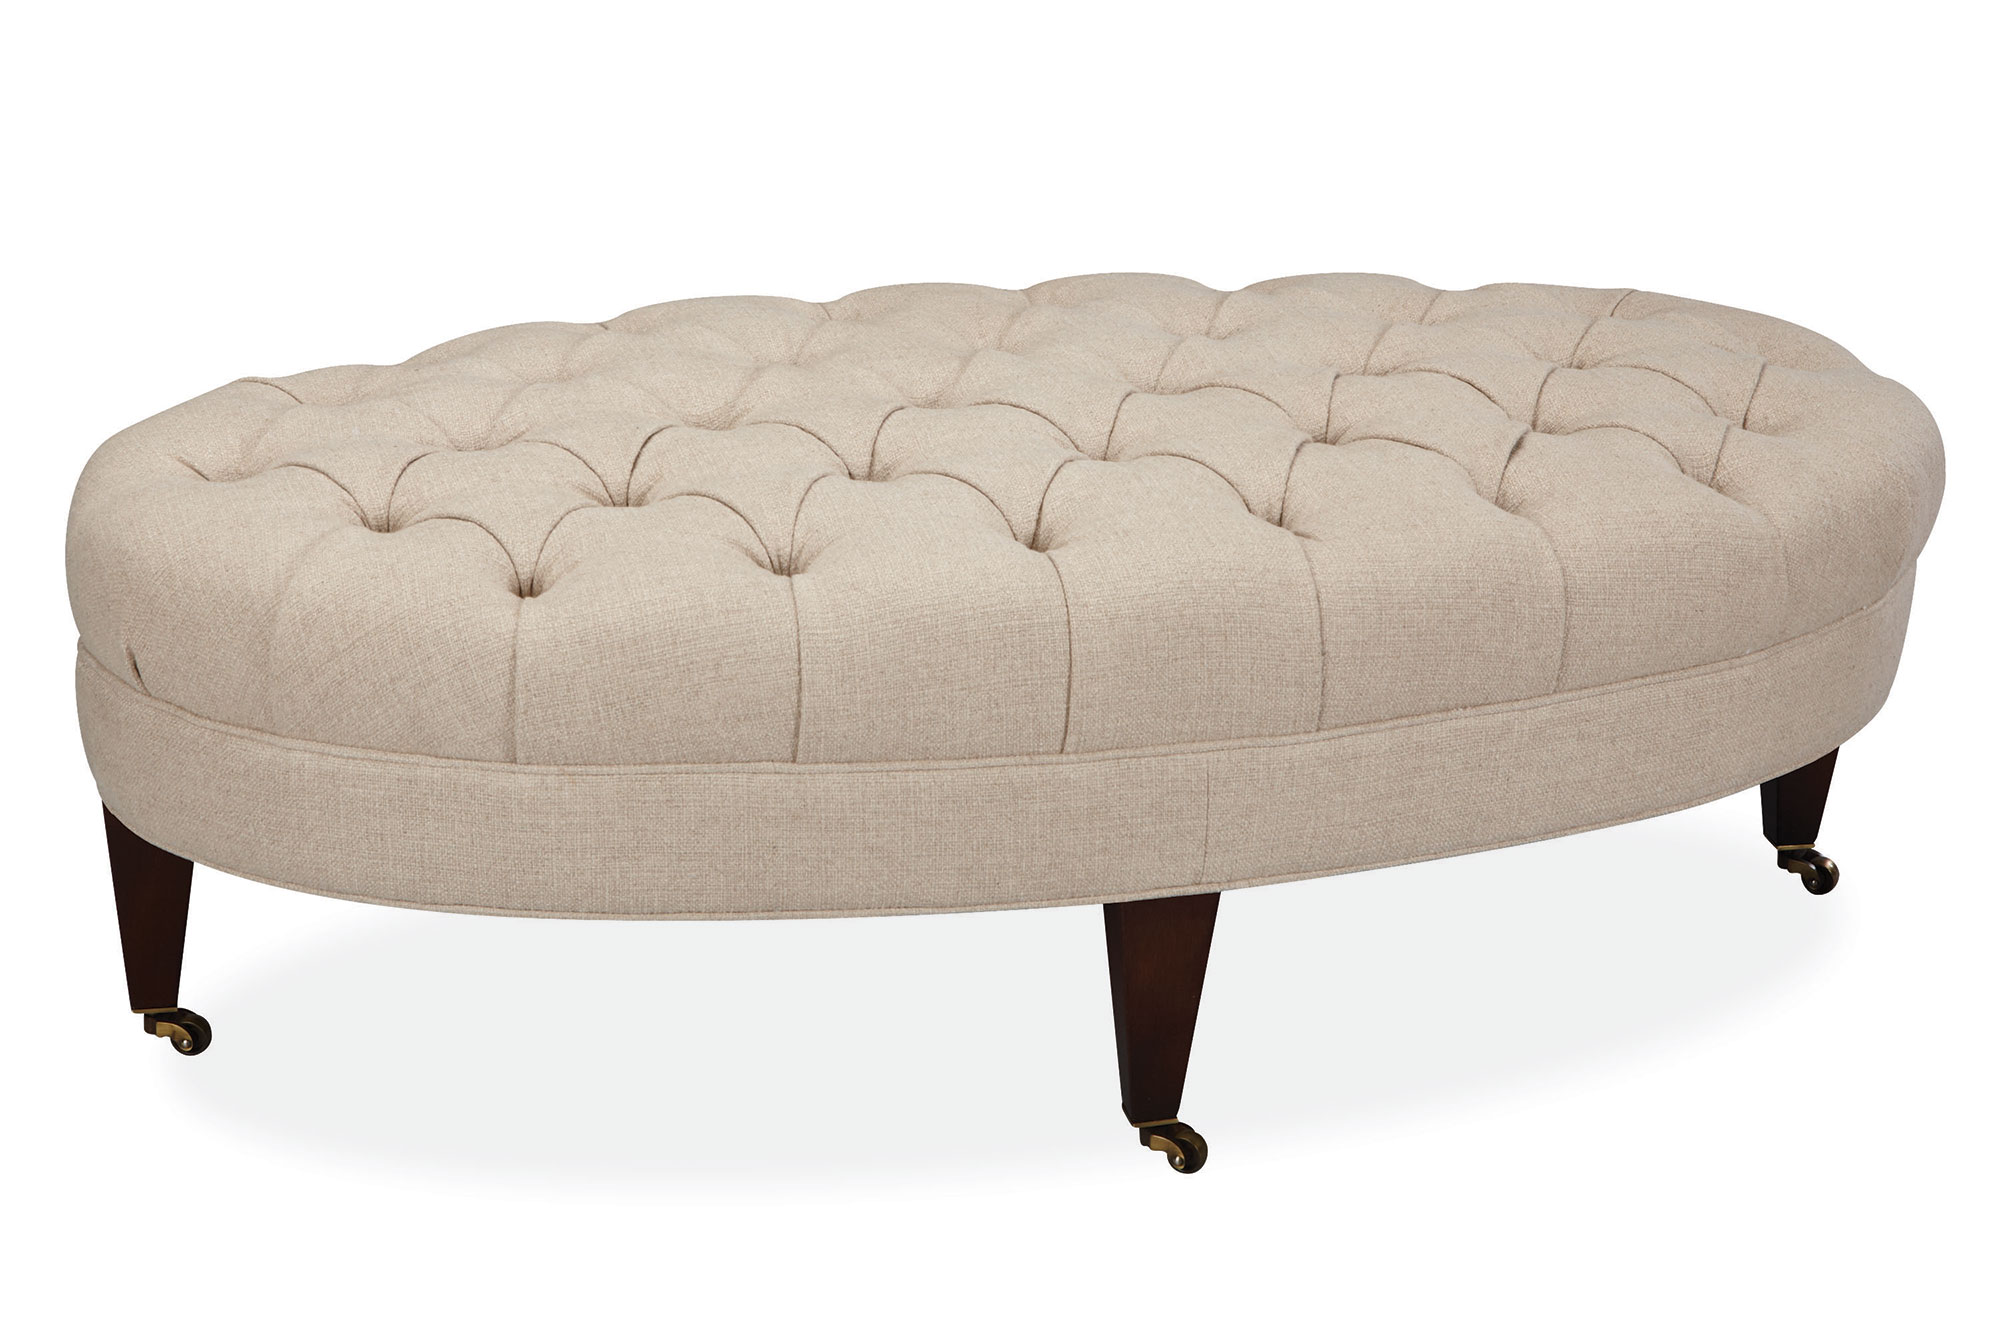 Ottomans & Benches - Upscale Ottomans - Leather, Wood ...